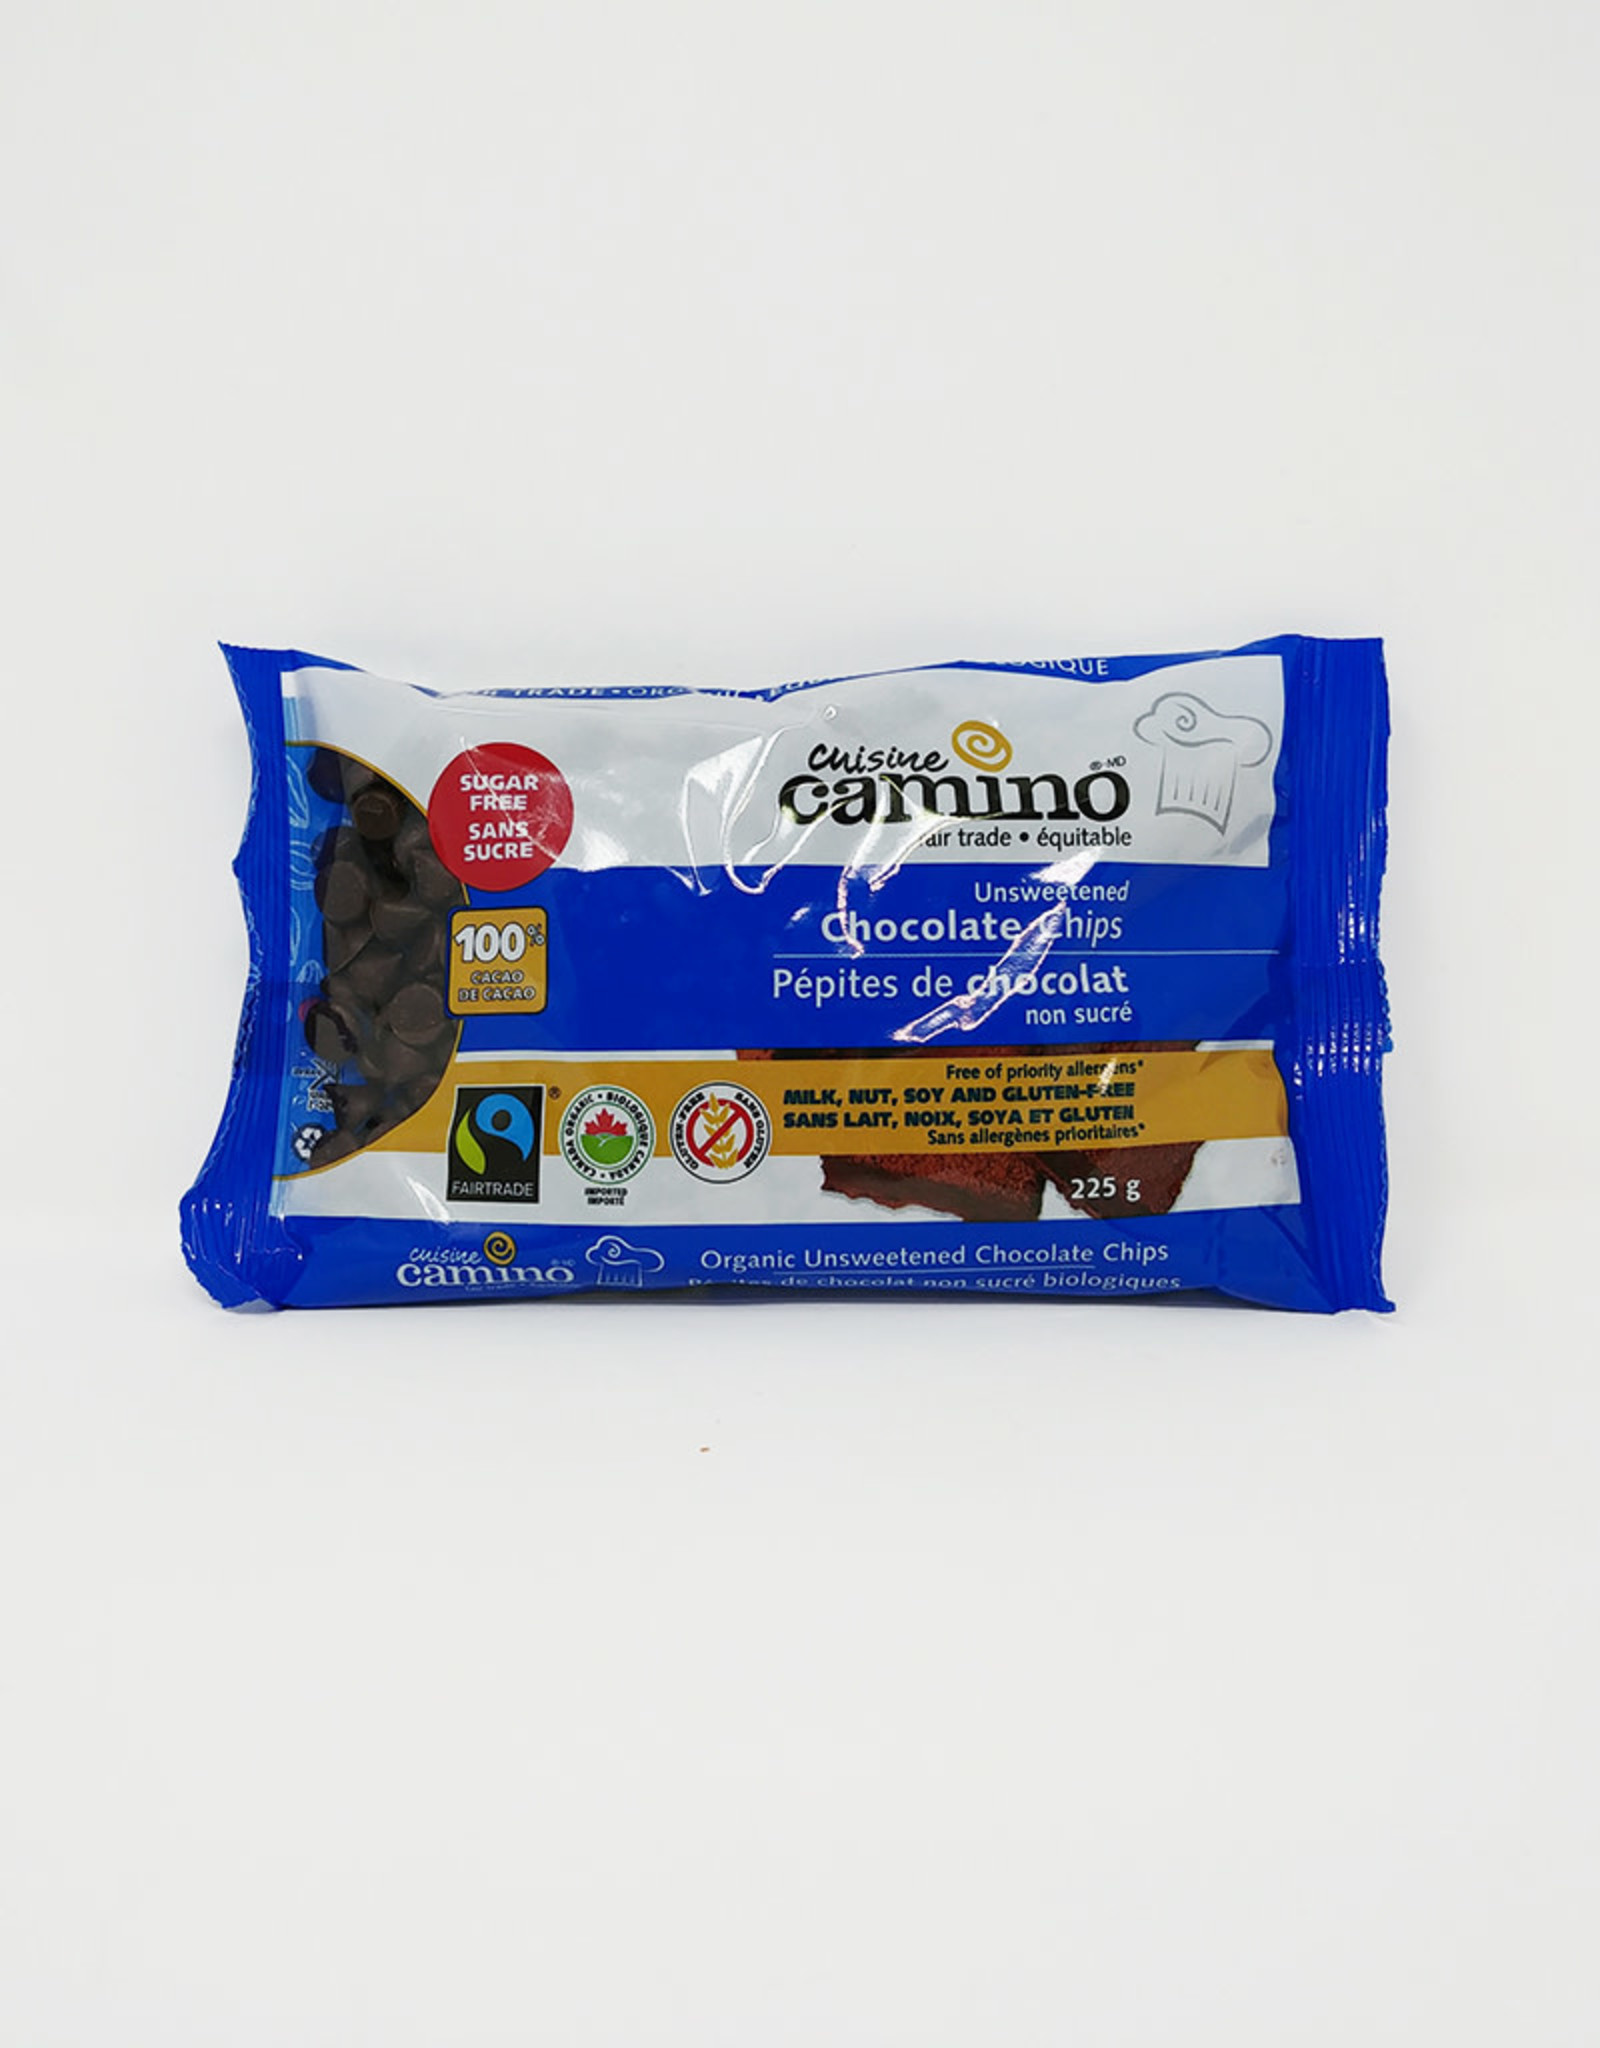 Camino Camino - Baking Chocolate, Org. Sugar Free Chocolate Chips